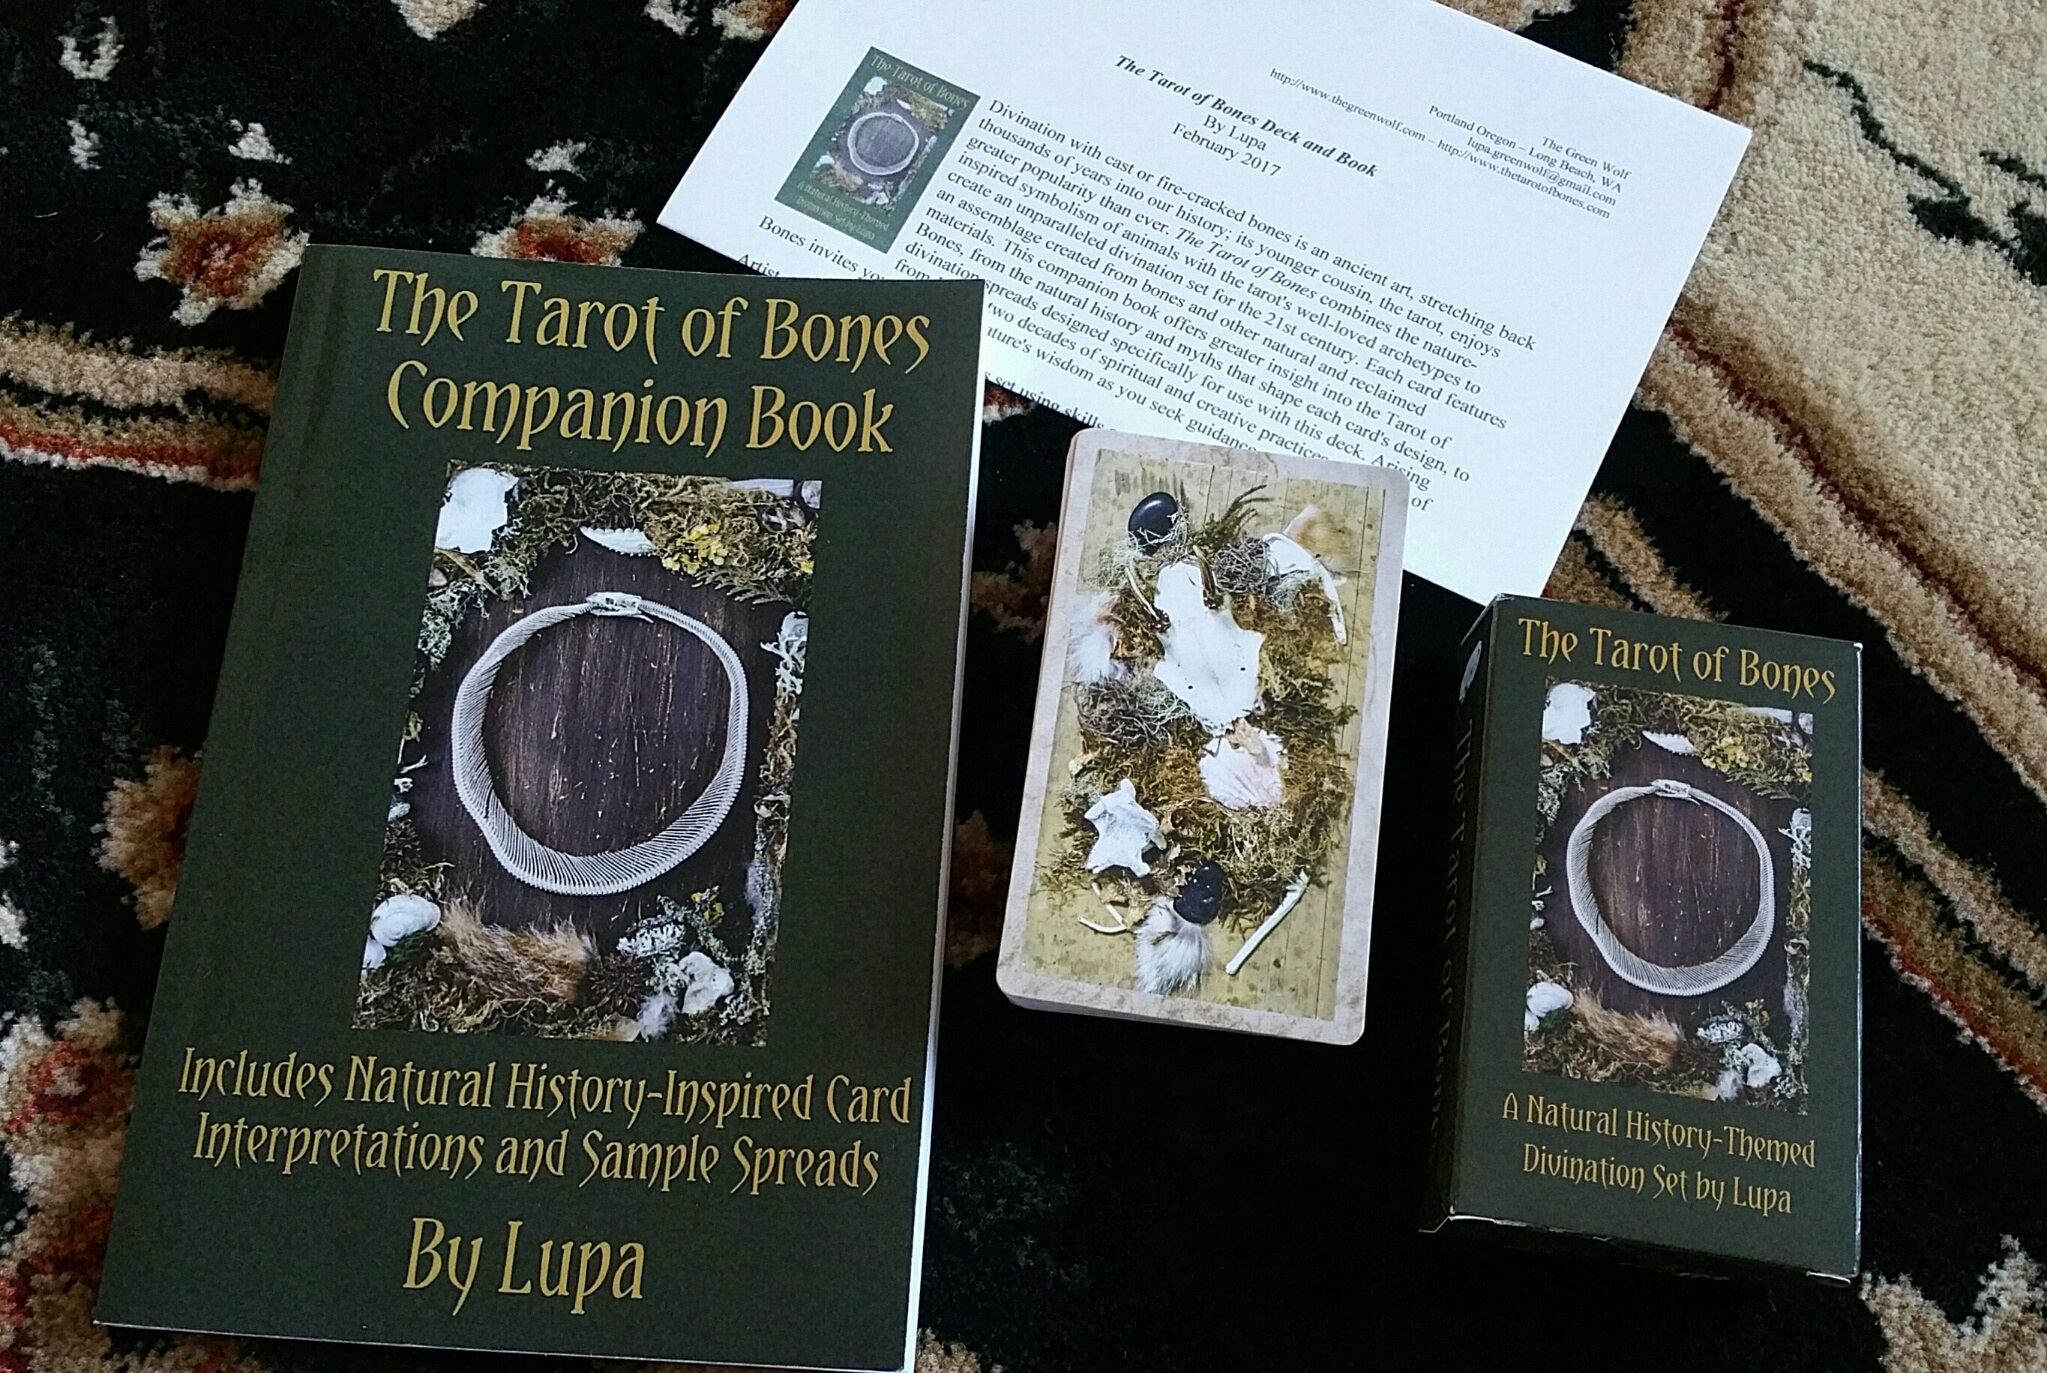 Review of the tarot of bones by lupa benebell wen review of the tarot of bones by lupa fandeluxe Gallery